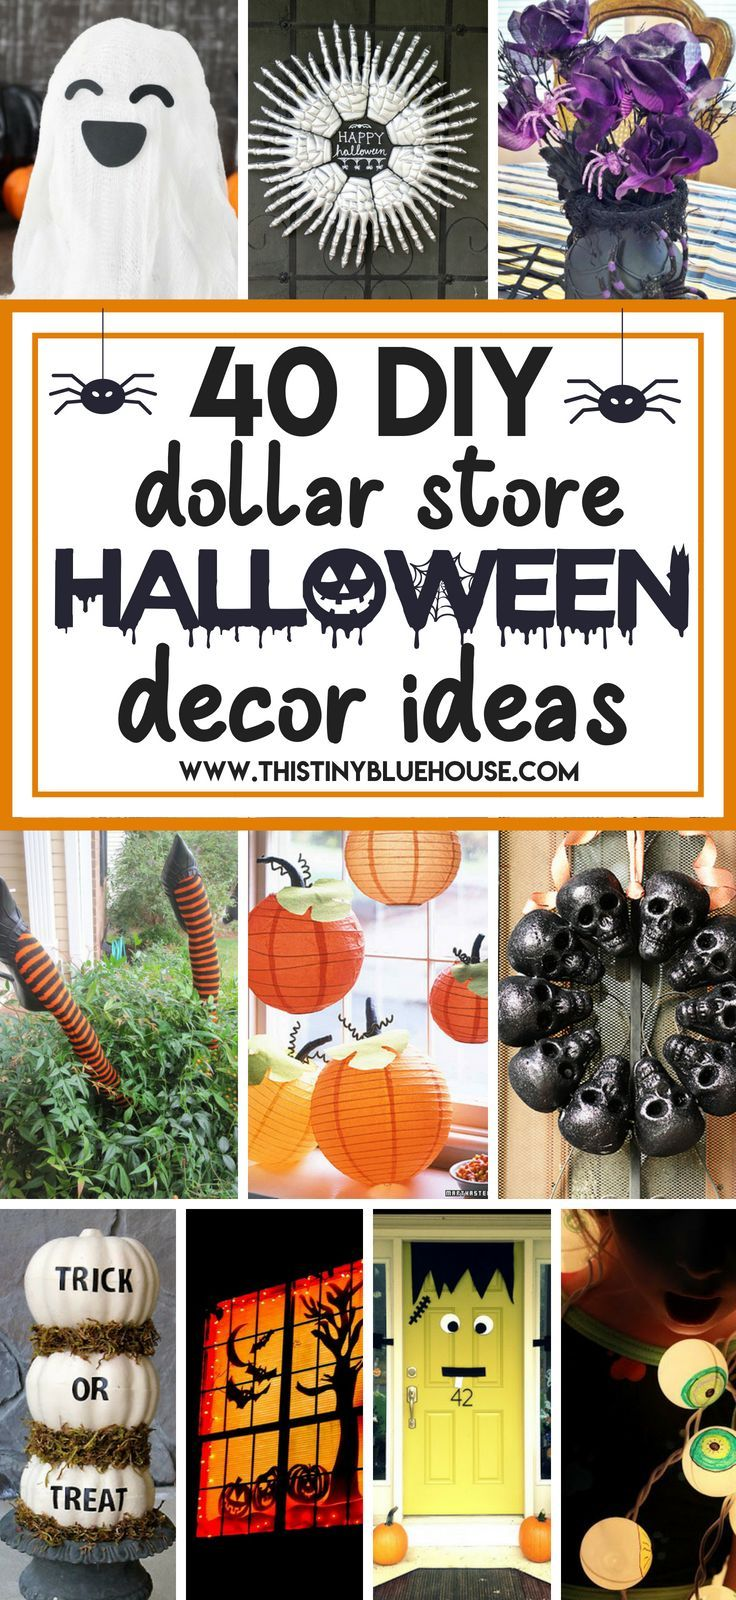 12 Best DIY Dollar Store Halloween Decoration Ideas  Dollar store